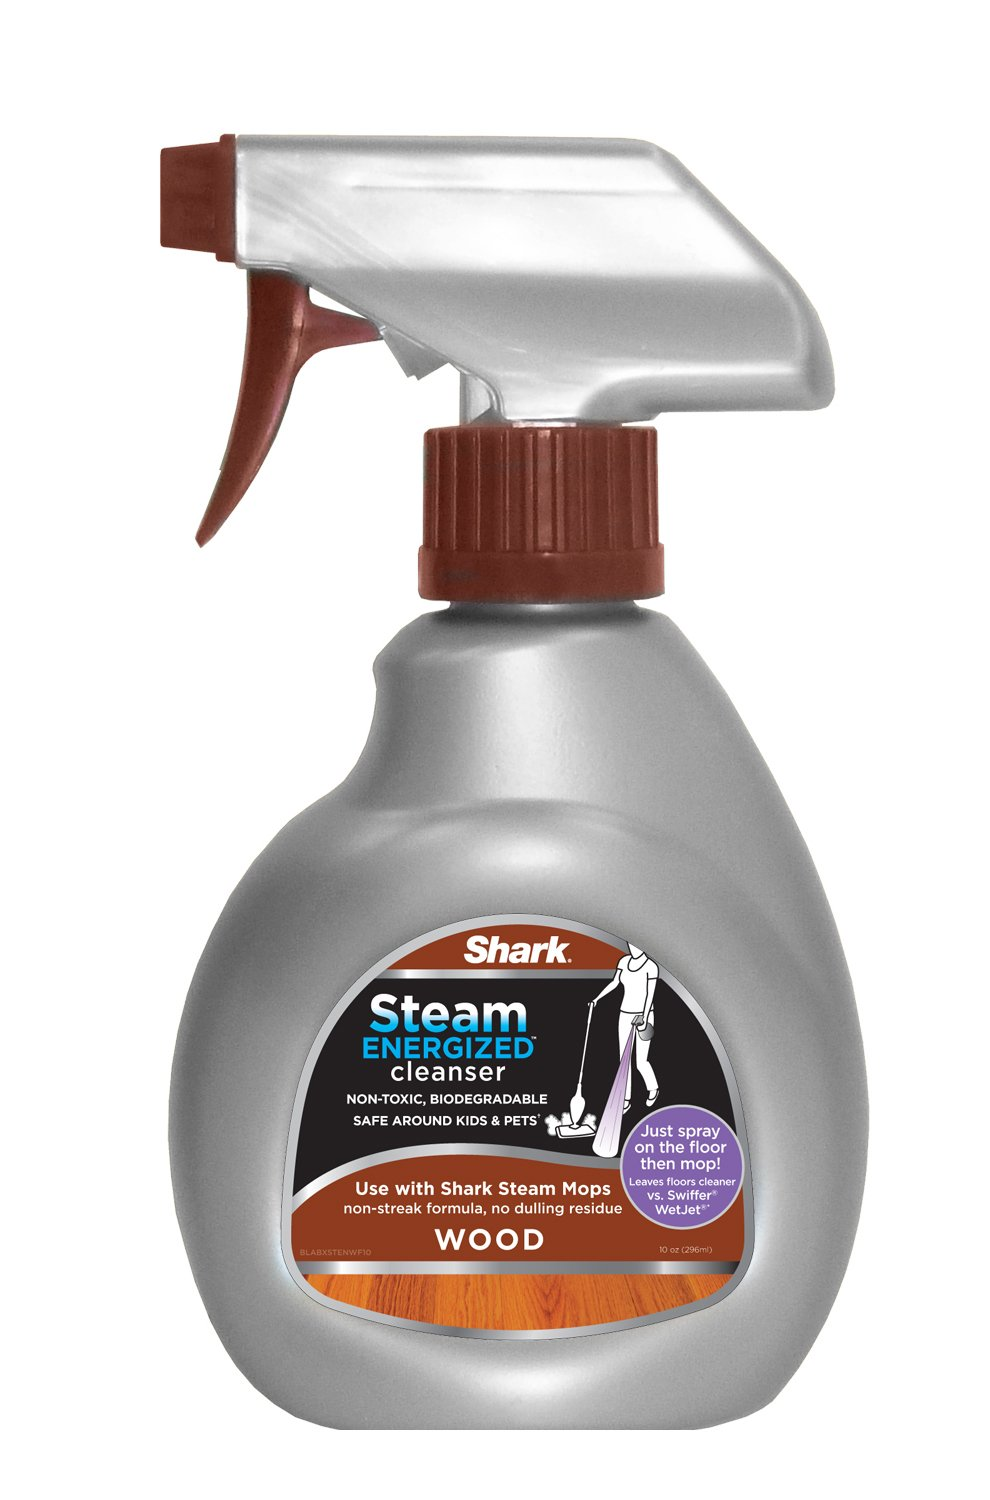 Shark Steam Energized Cleanser Spray Floor Cleaner for Use on Wood Floors with Steam Mops (RSW100)